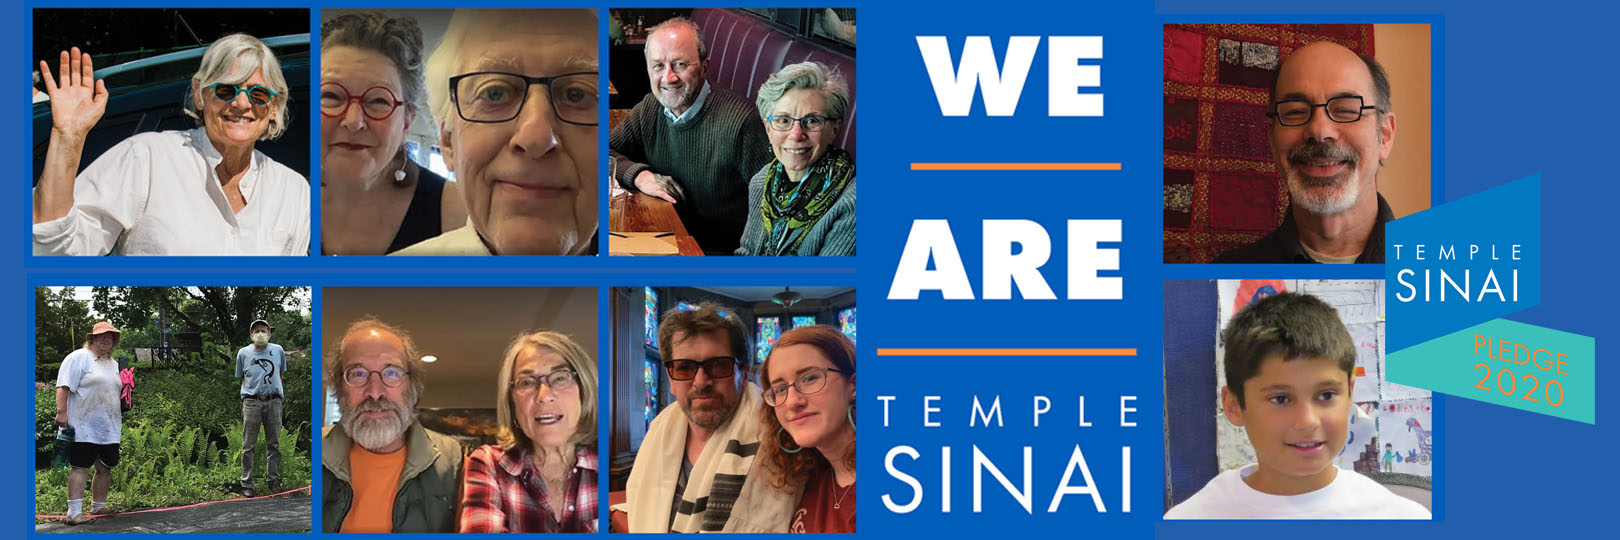 """<a href=""""https://www.templesinaipgh.org/pledge""""                                     target="""""""">                                                                 <span class=""""slider_title"""">                                     WE ARE TEMPLE SINAI                                </span>                                                                 </a>                                                                                                                                                                                       <span class=""""slider_description"""">Inspired. Innovative. Inclusive. Make Your 2020 Membership Pledge Today!</span>                                                                                     <a href=""""https://www.templesinaipgh.org/pledge"""" class=""""slider_link""""                             target="""""""">                             Pledge Today                            </a>"""